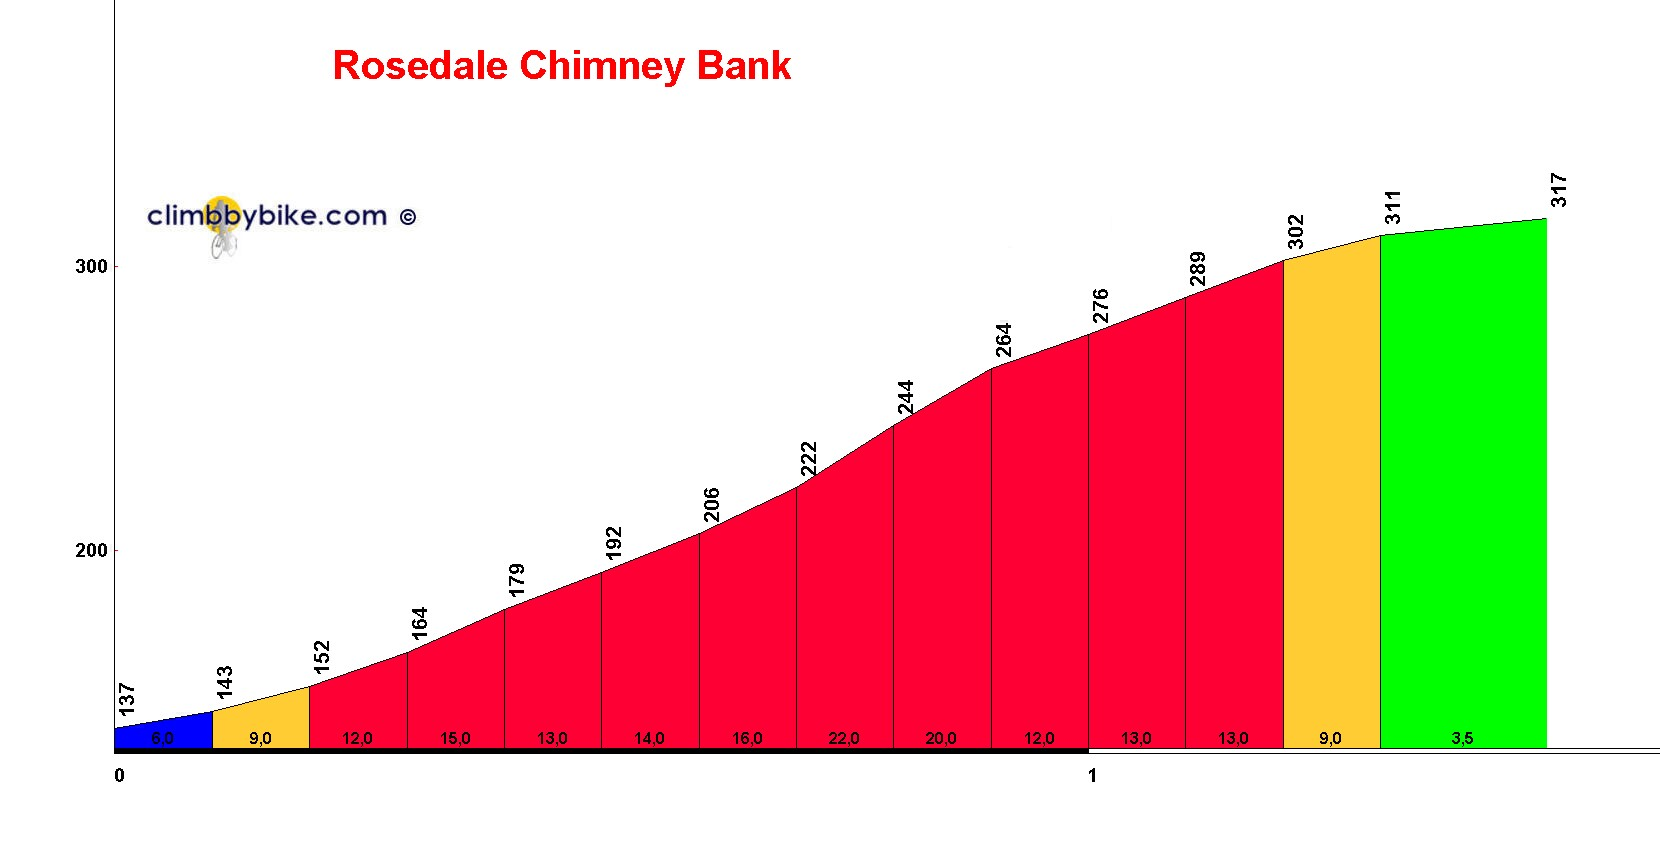 Elevation profile for Rosedale Chimney Bank